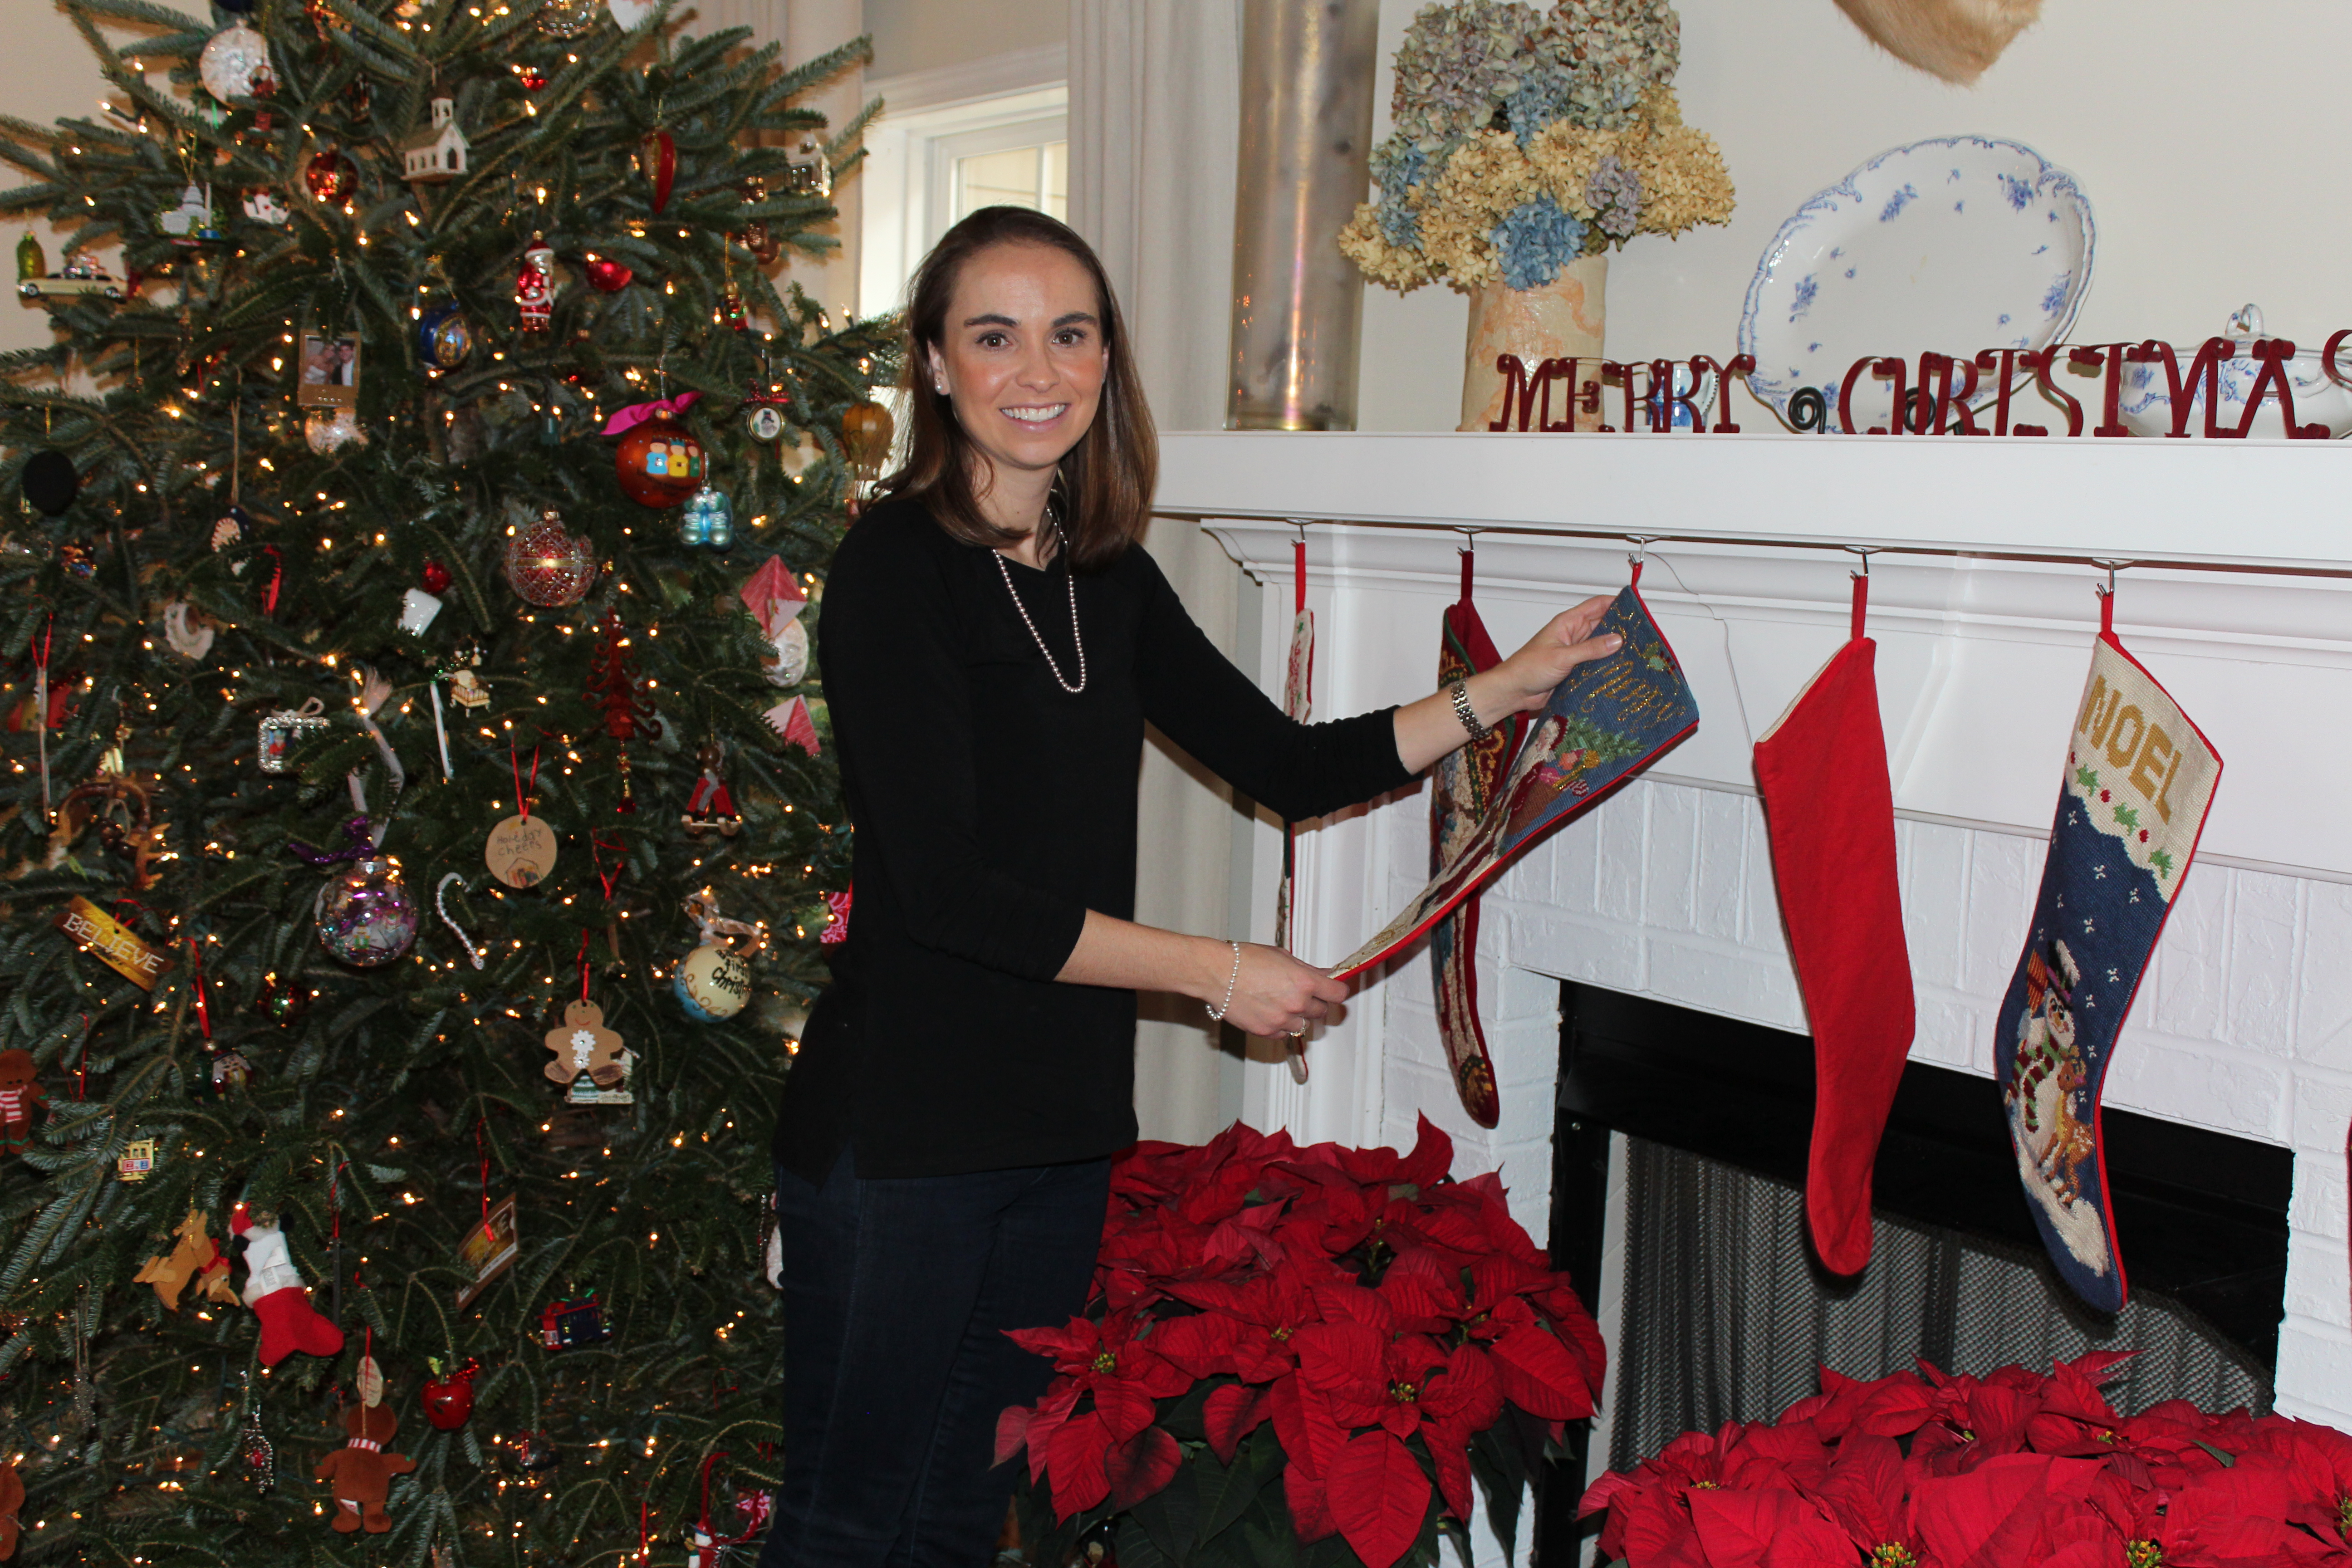 Jessica Nicholson shares family recipes, thoughts on Christmas ...